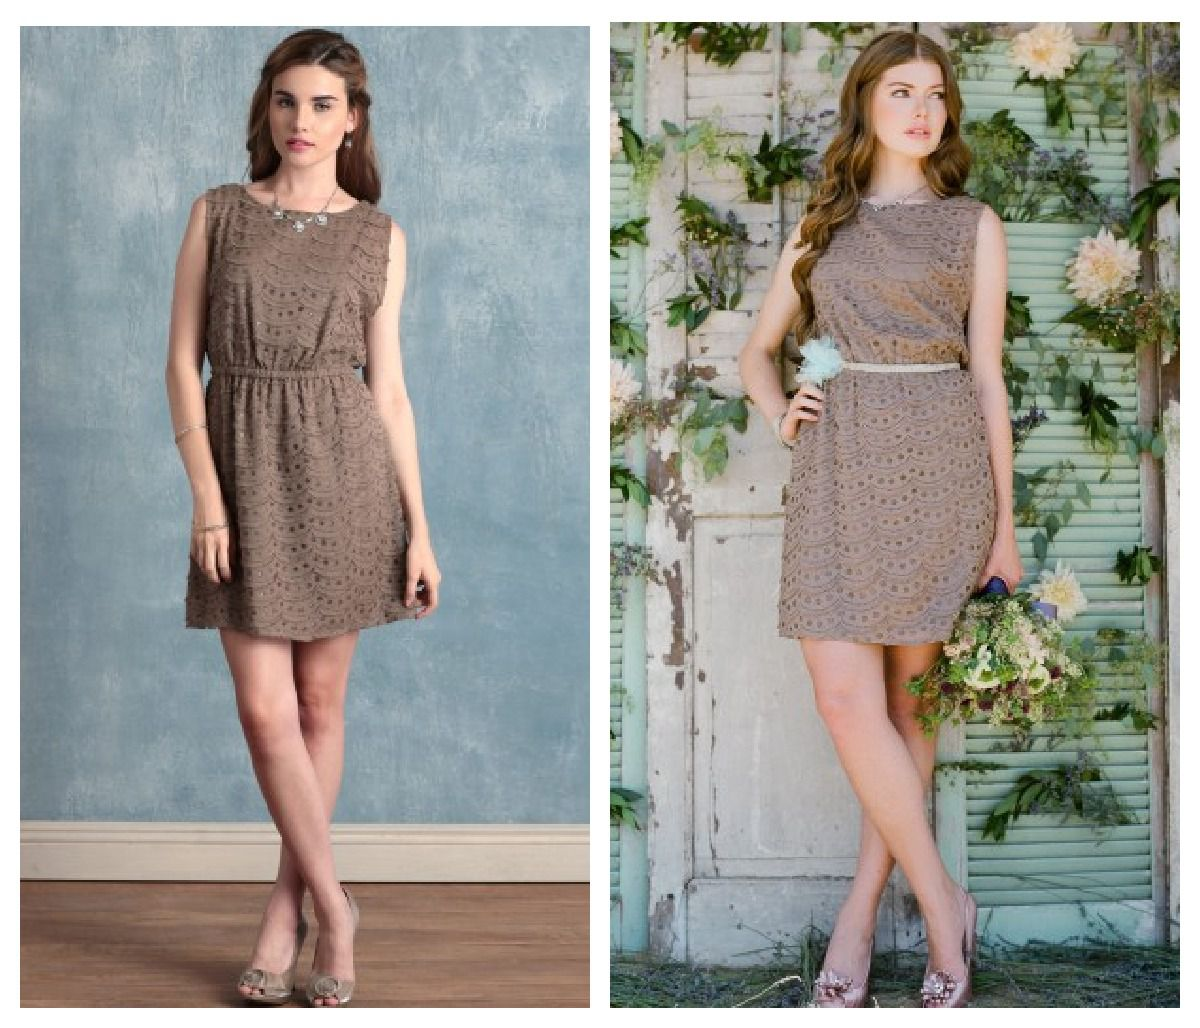 Bridesmaid Dresses For A Vintage Wedding - Rustic Wedding Chic